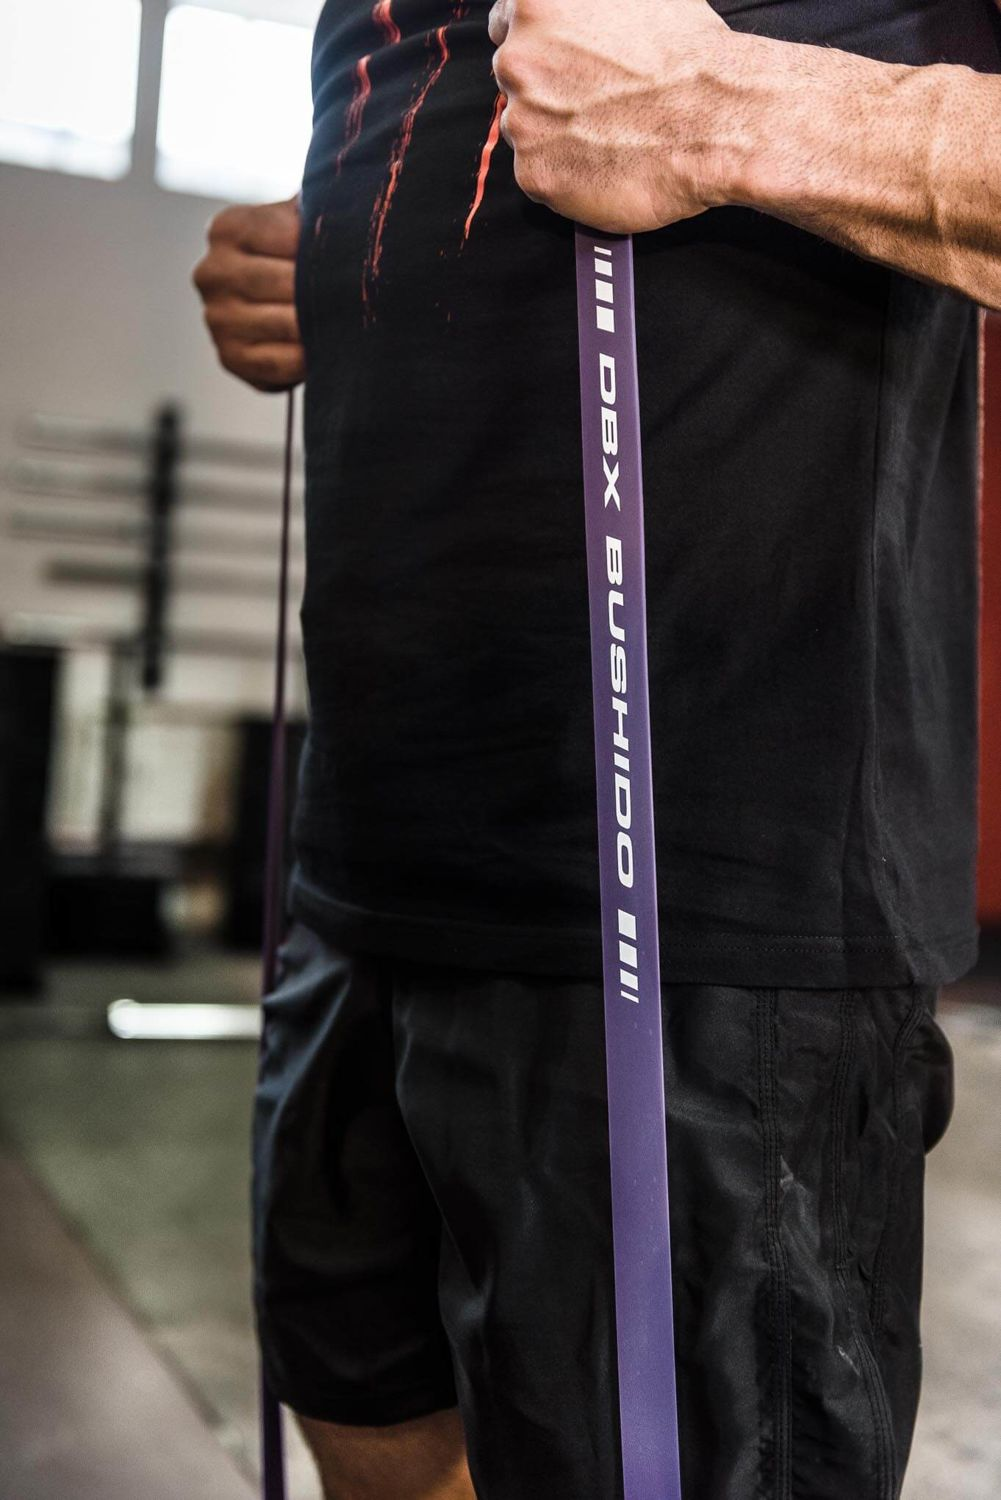 POWER BAND 83 GUMA TRENINGOWA  DBX BUSHIDO -  39-105 KG